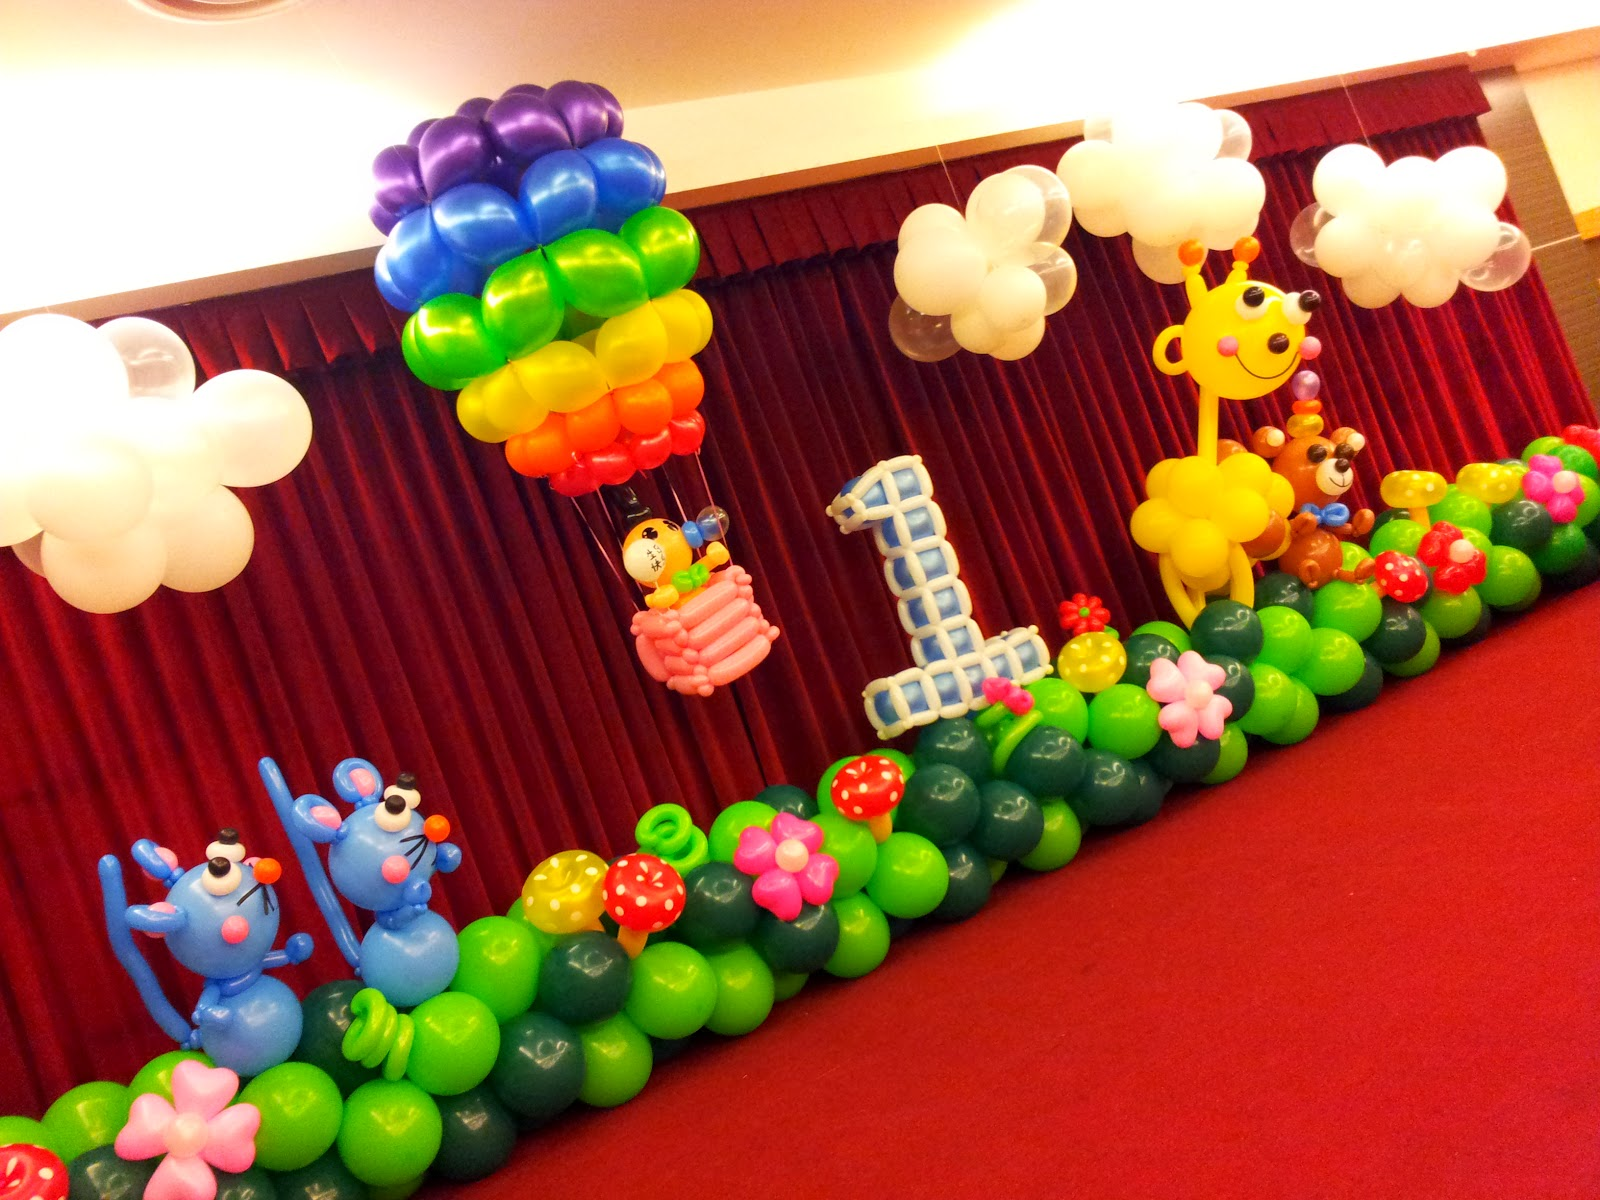 Smooth party rb planners for Balloon decoration ideas for birthdays